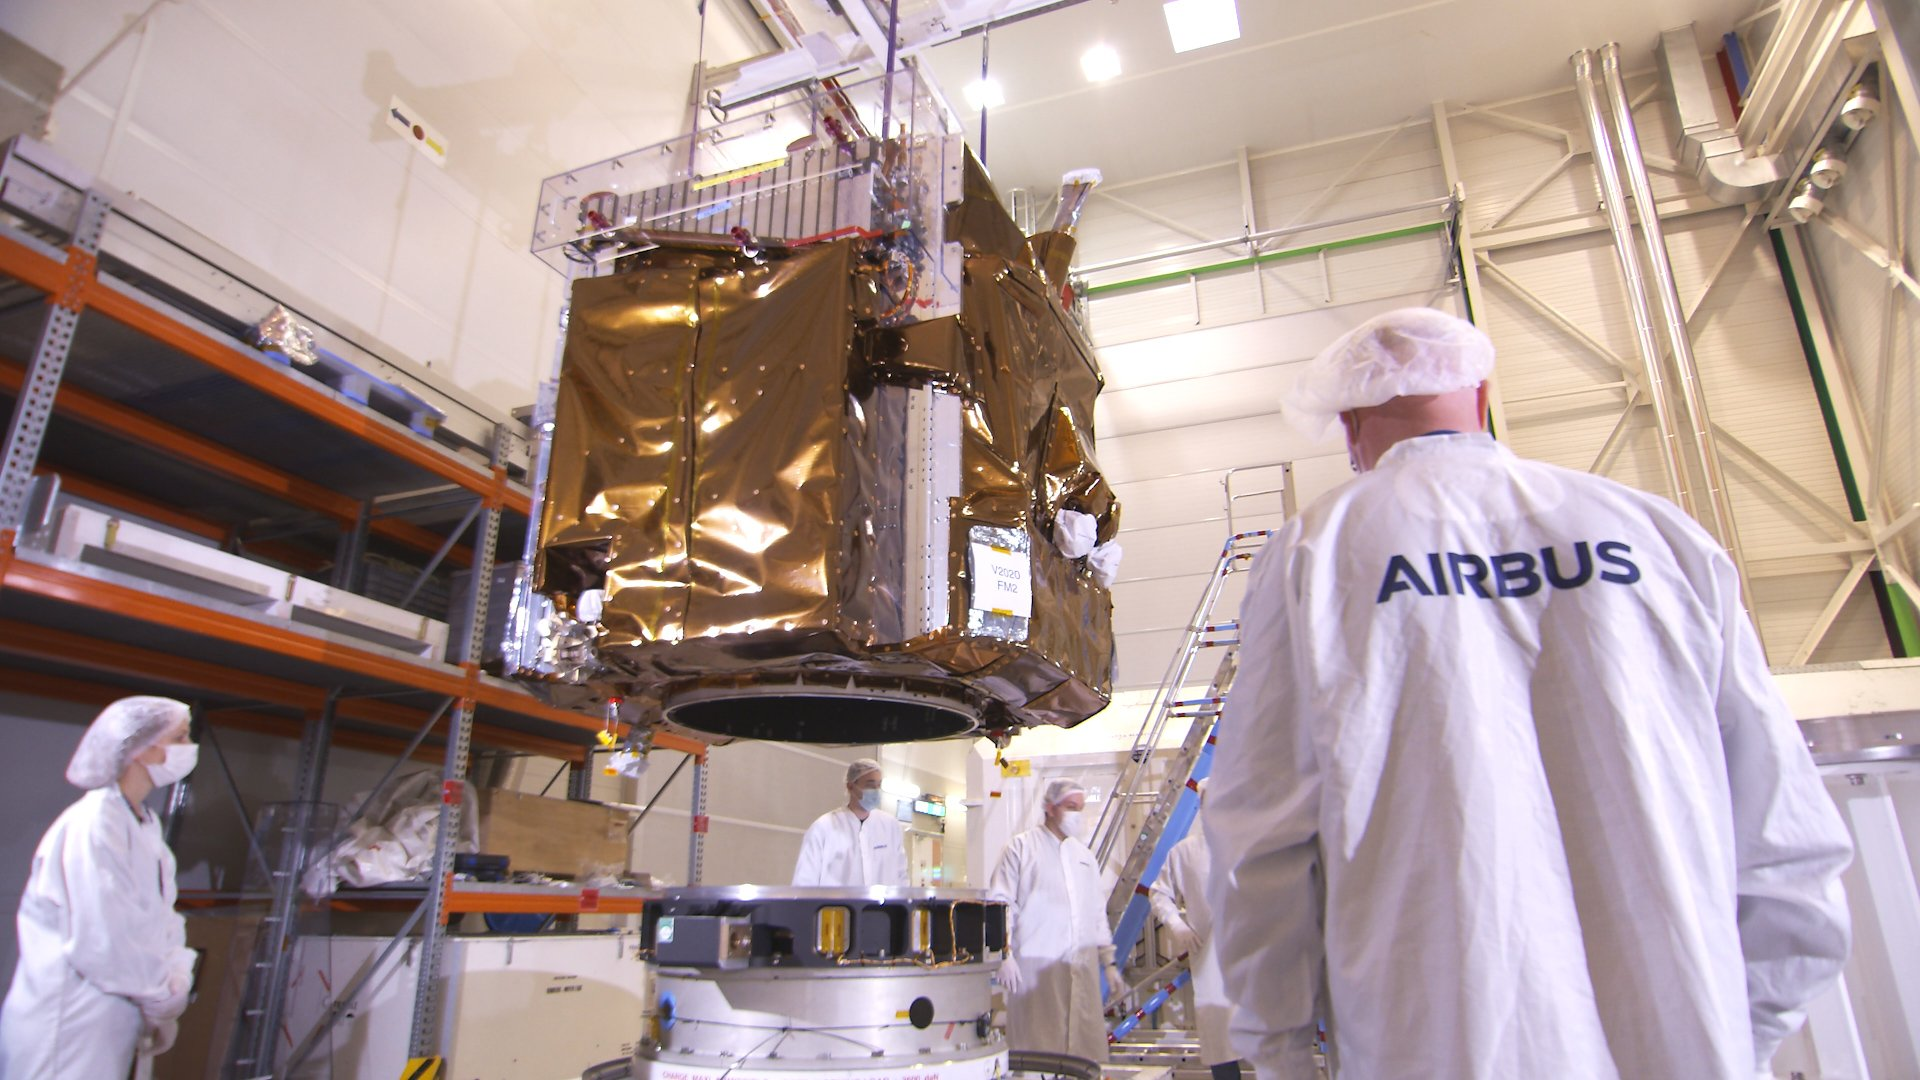 The first of Airbus' Pléiades Neo high-resolution imaging satellites will be orbited by a Vega launcher in the first half of 2021